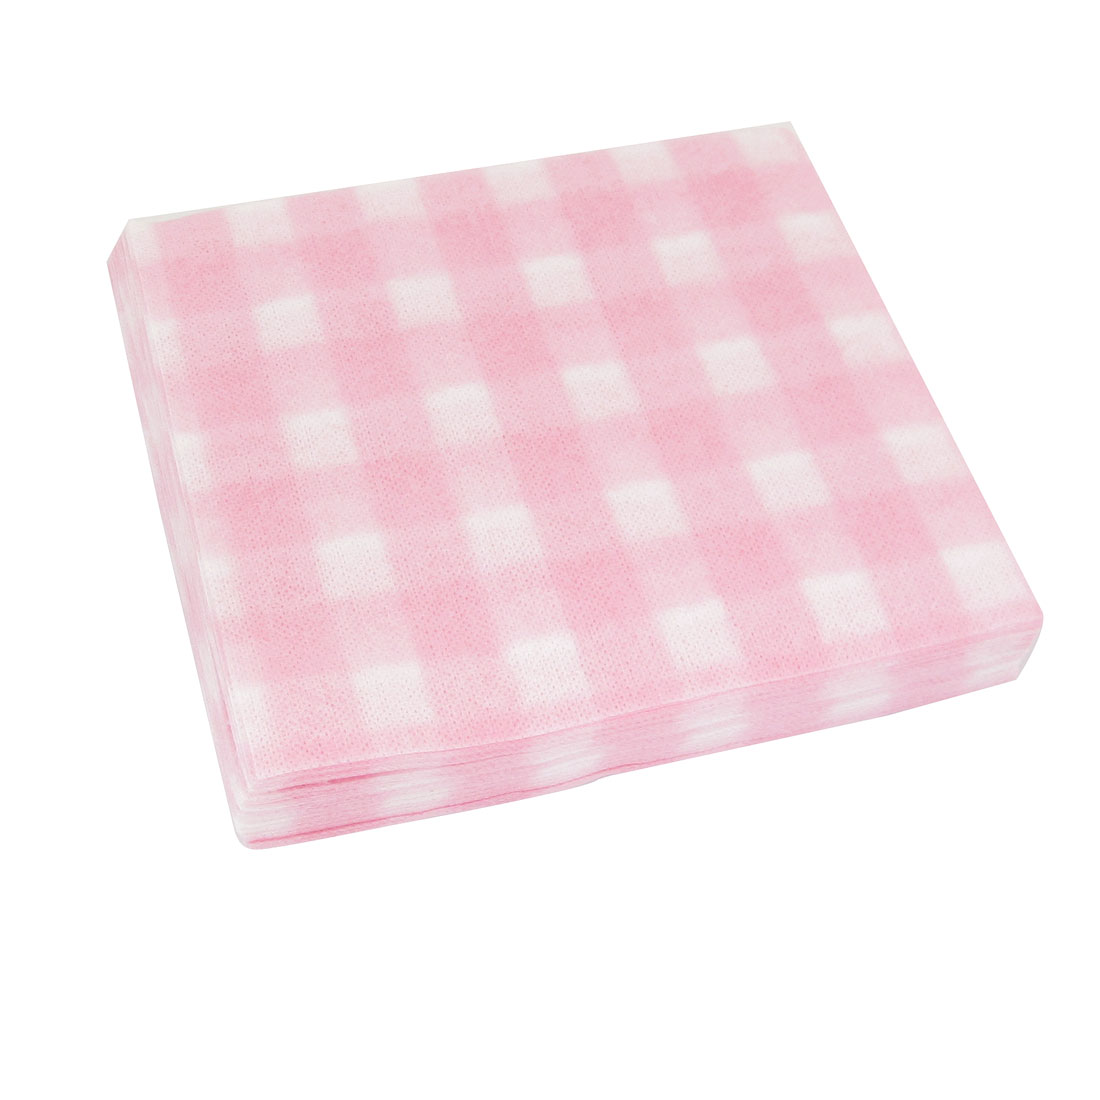 65 Pcs Disposable White Pink Check Pattern Plant Fibre Facial Towel